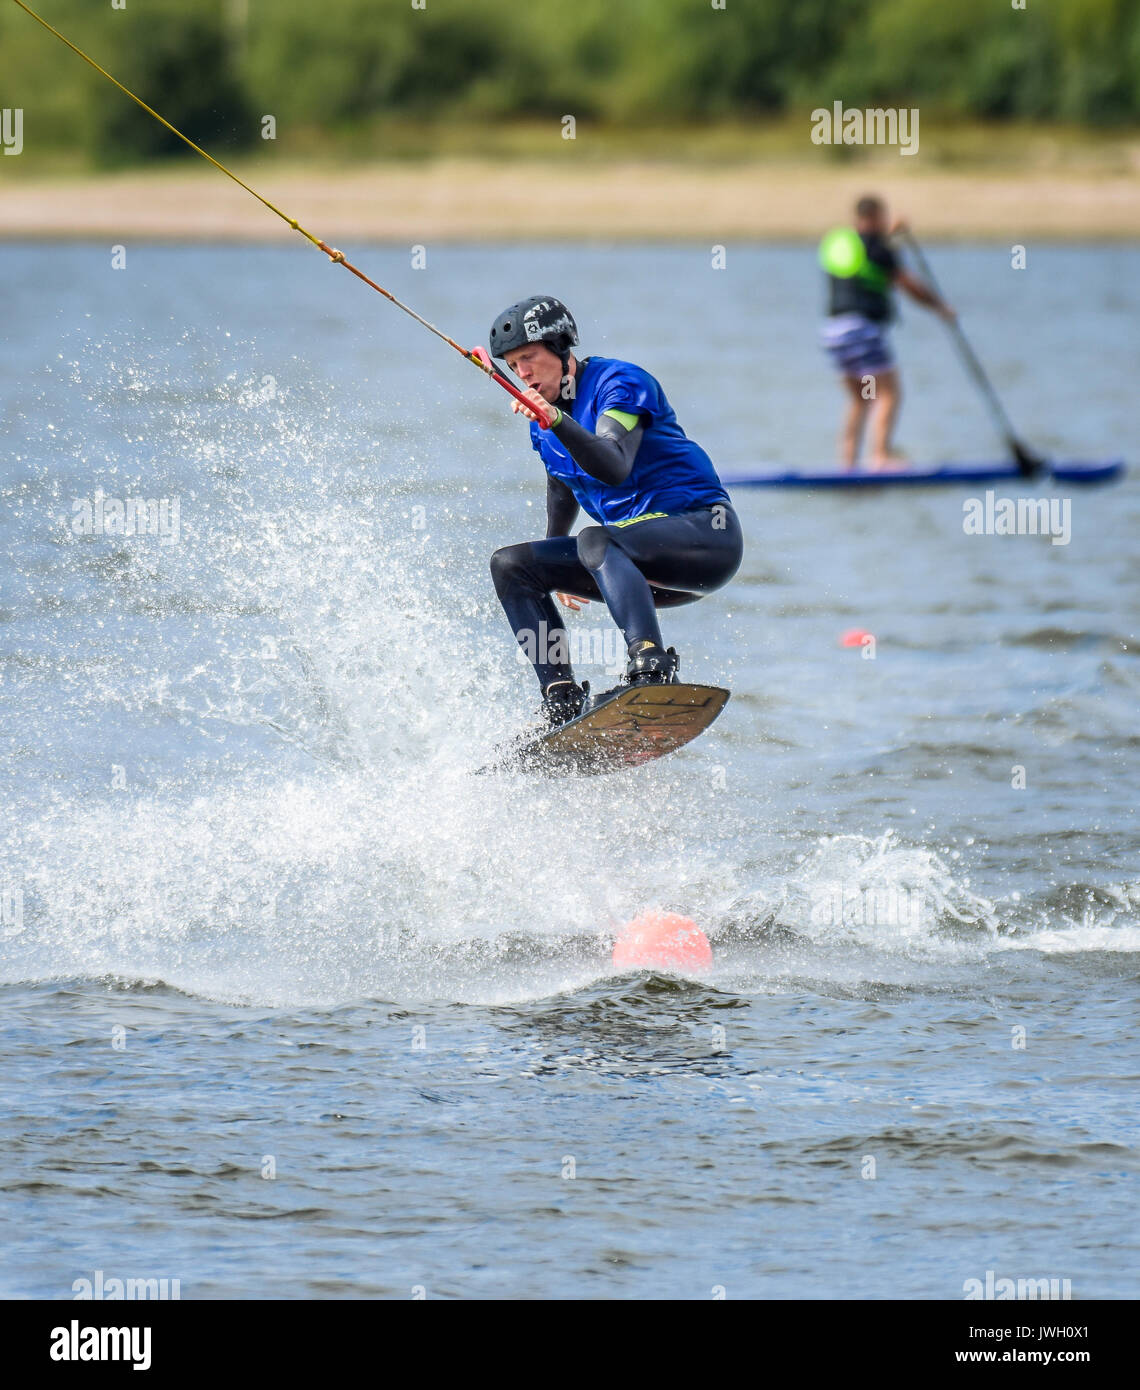 Wakeboarding via a cable tow system at Chasewater, Staffordshire, UK - Stock Image